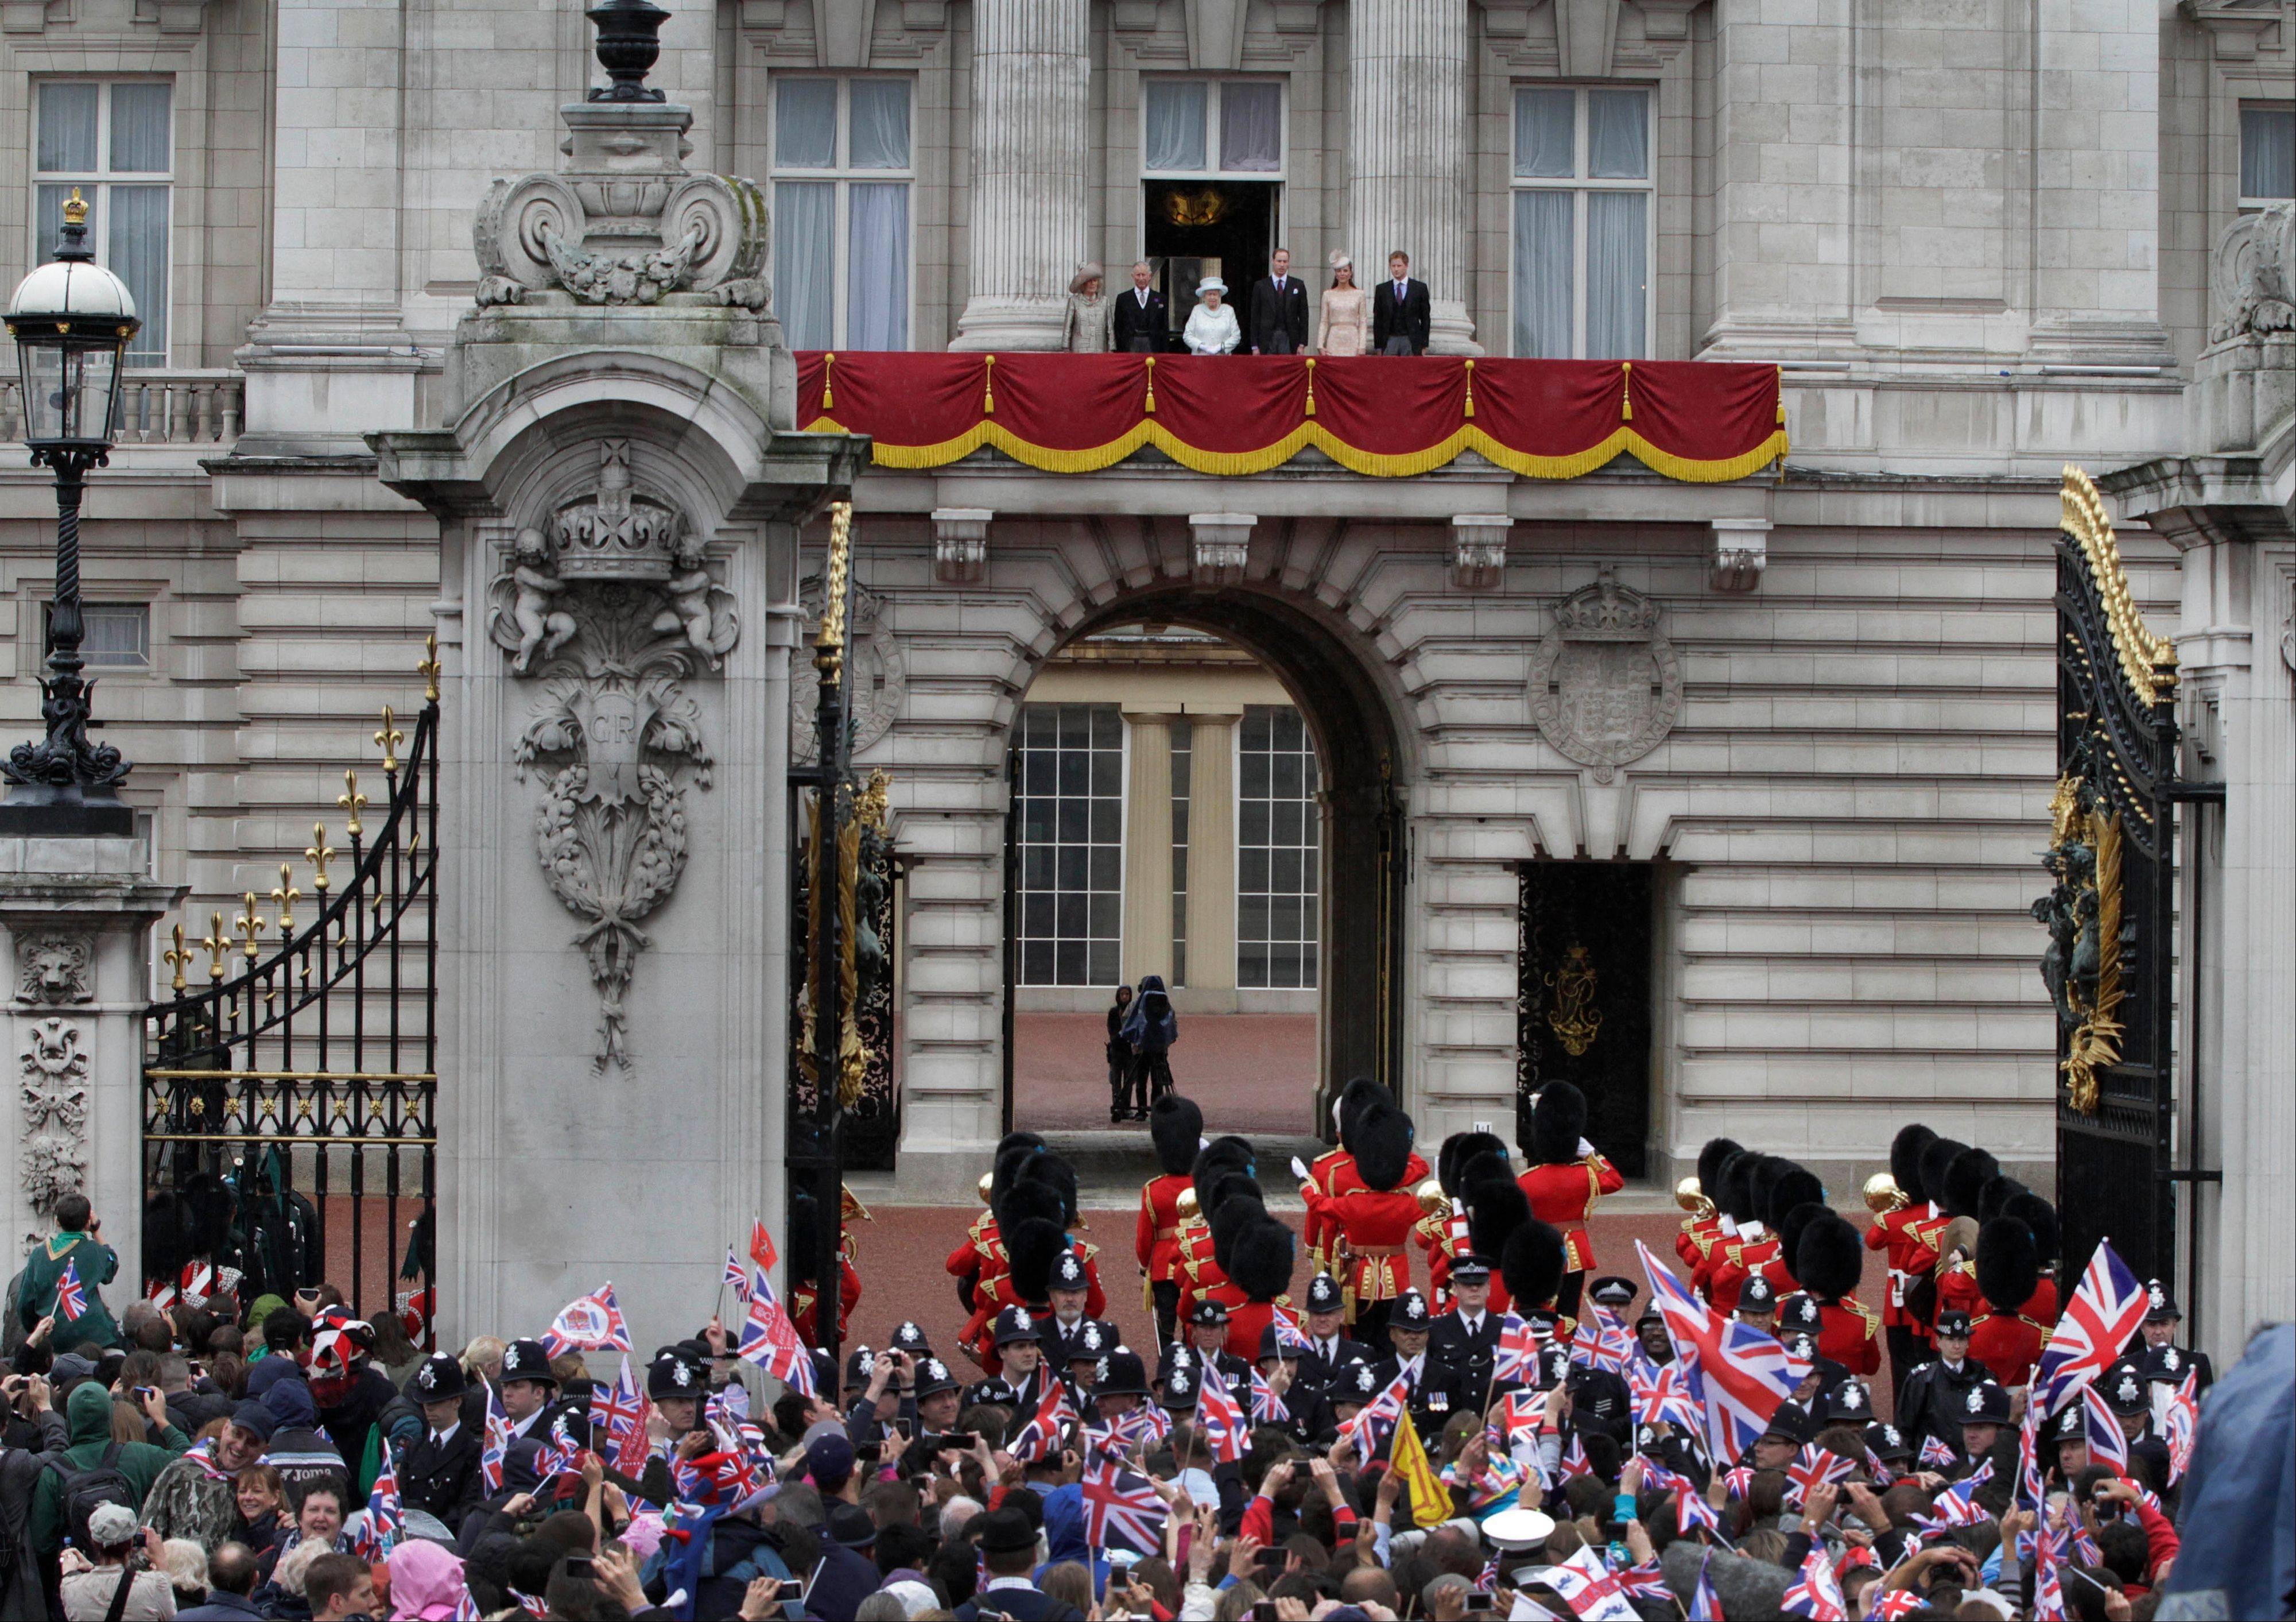 Britain's Queen Elizabeth II, accompanied by Prince Charles and the Duchess of Cornwall, and Prince William, and Kate, Duchess of Cambridge and Prince Harry, appear on the balcony of Buckingham Palace in central London, Tuesday, June 5, 2012, to conclude the four-day Diamond Jubilee celebrations to mark the 60th anniversary of the Queen's accession to the throne.